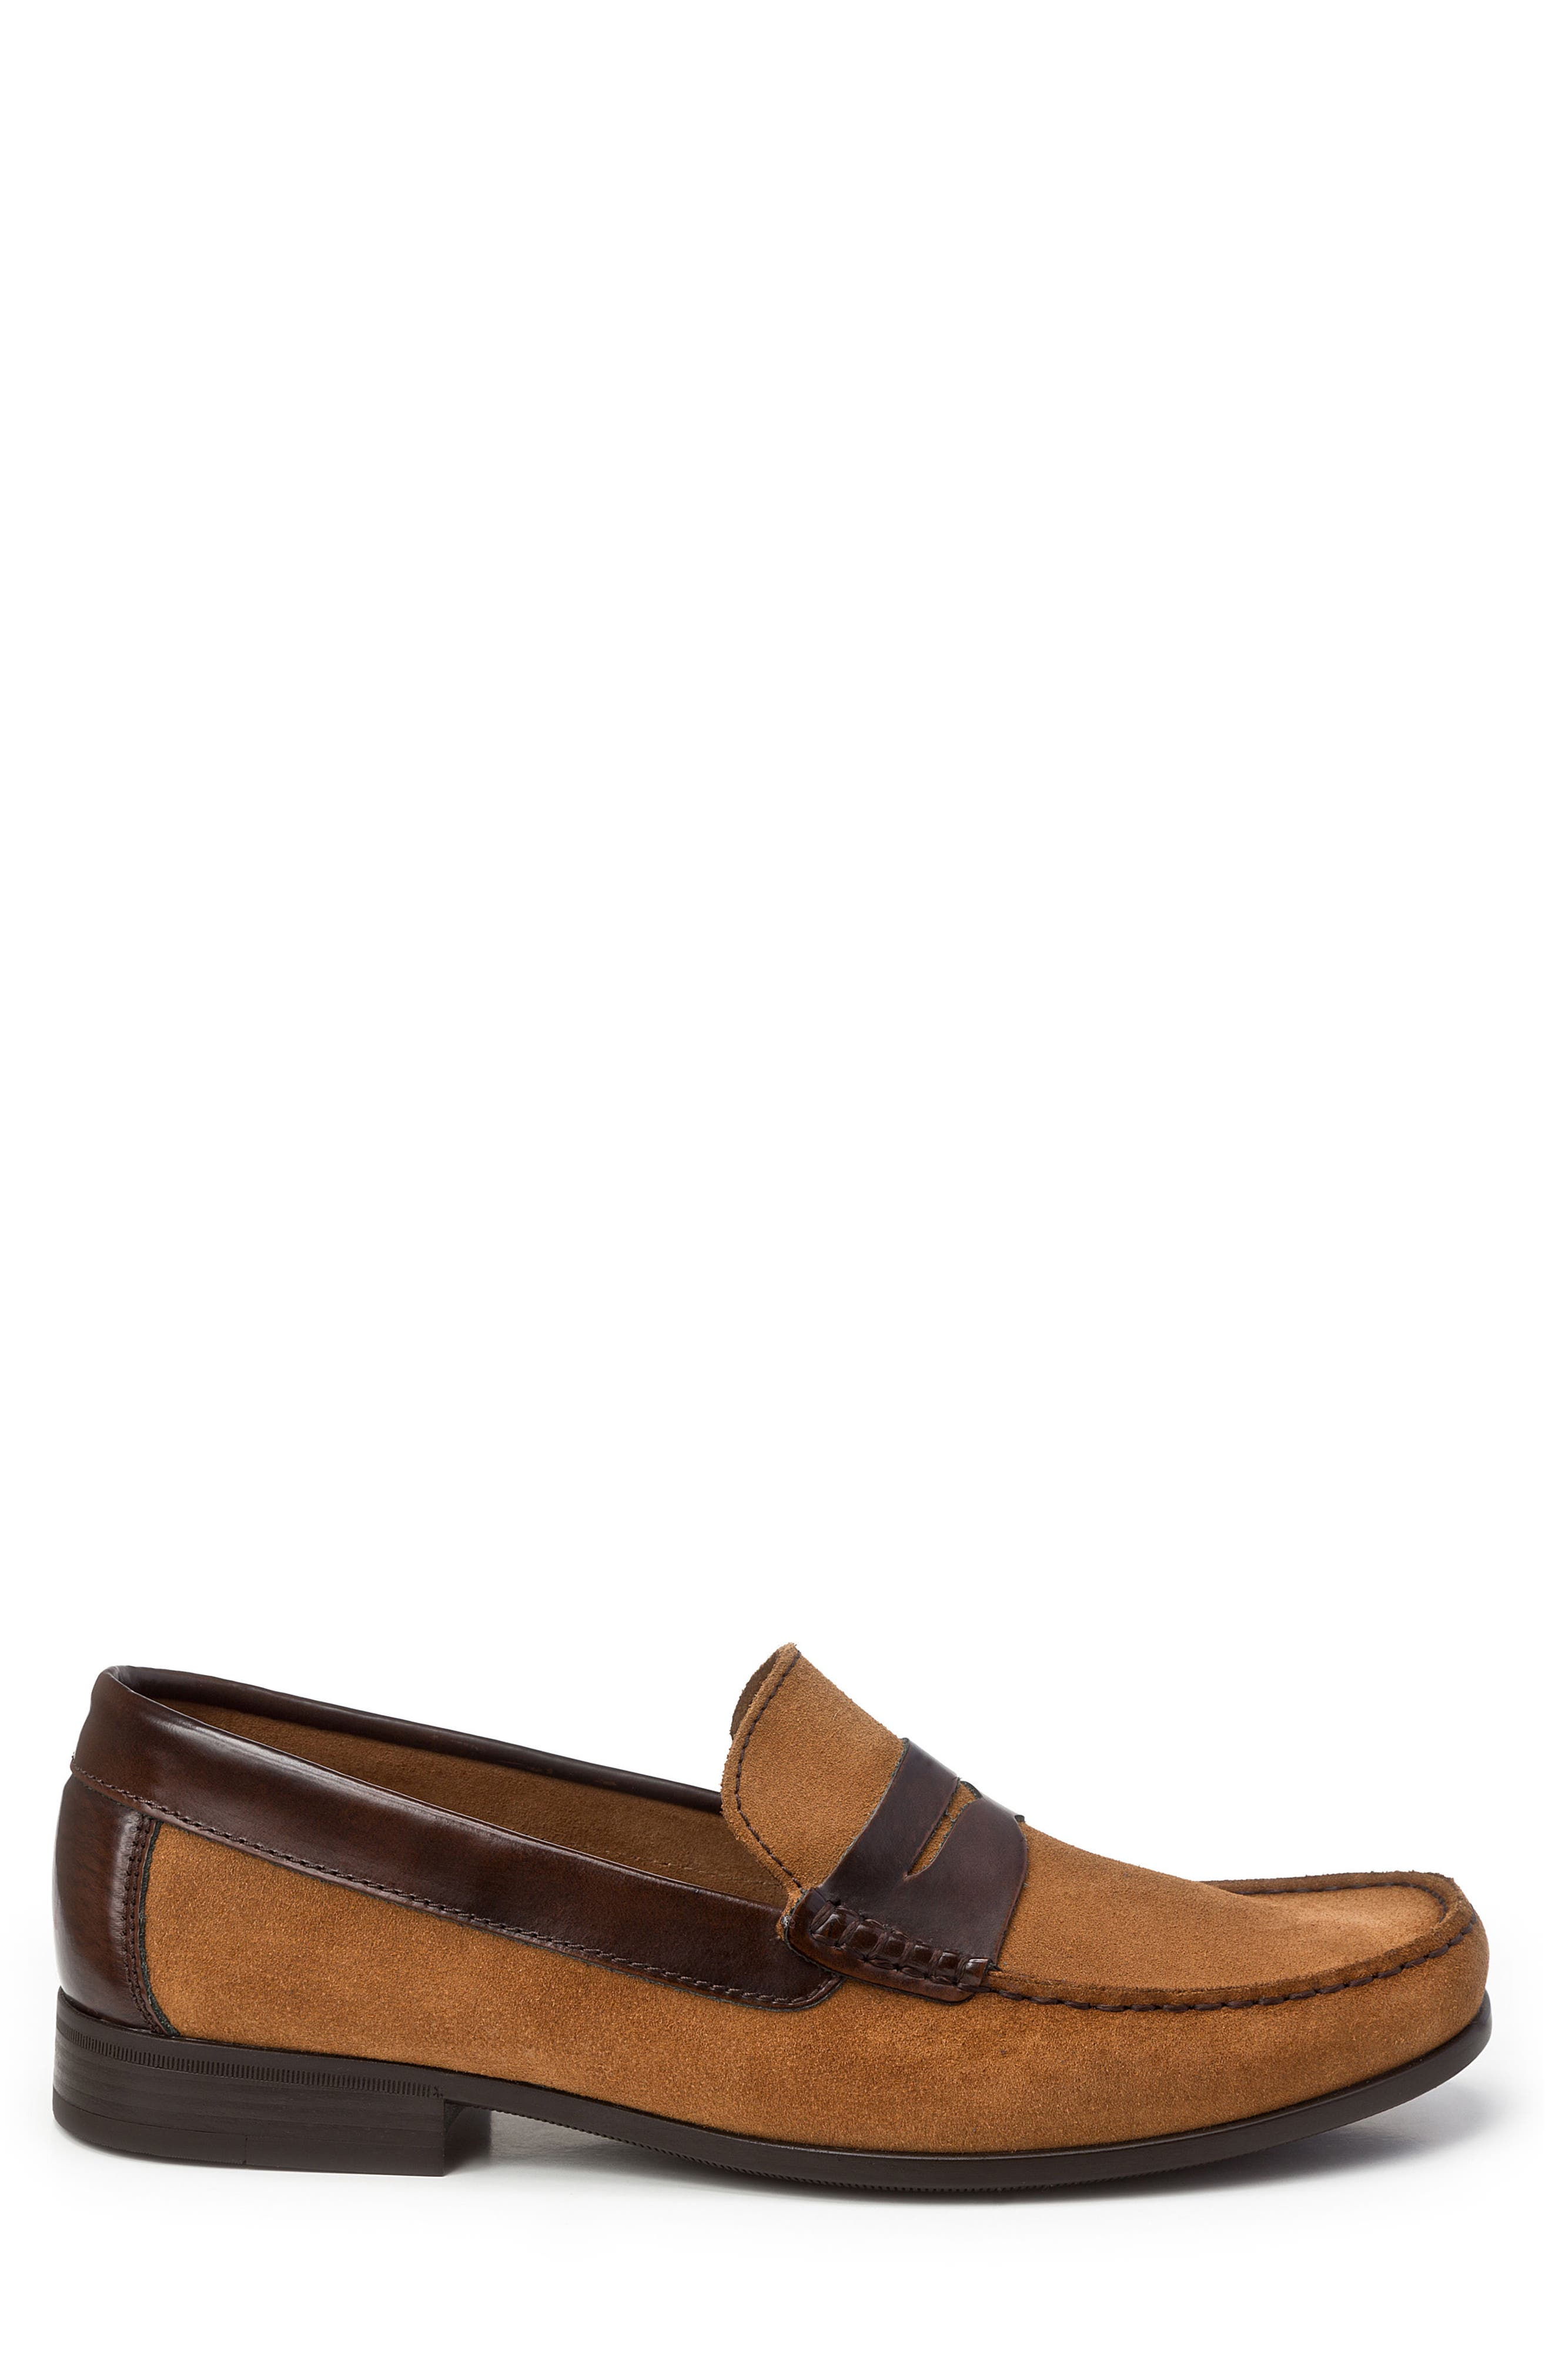 Alternate Image 3  - Sandro Moscoloni Lucho Penny Loafer (Men)